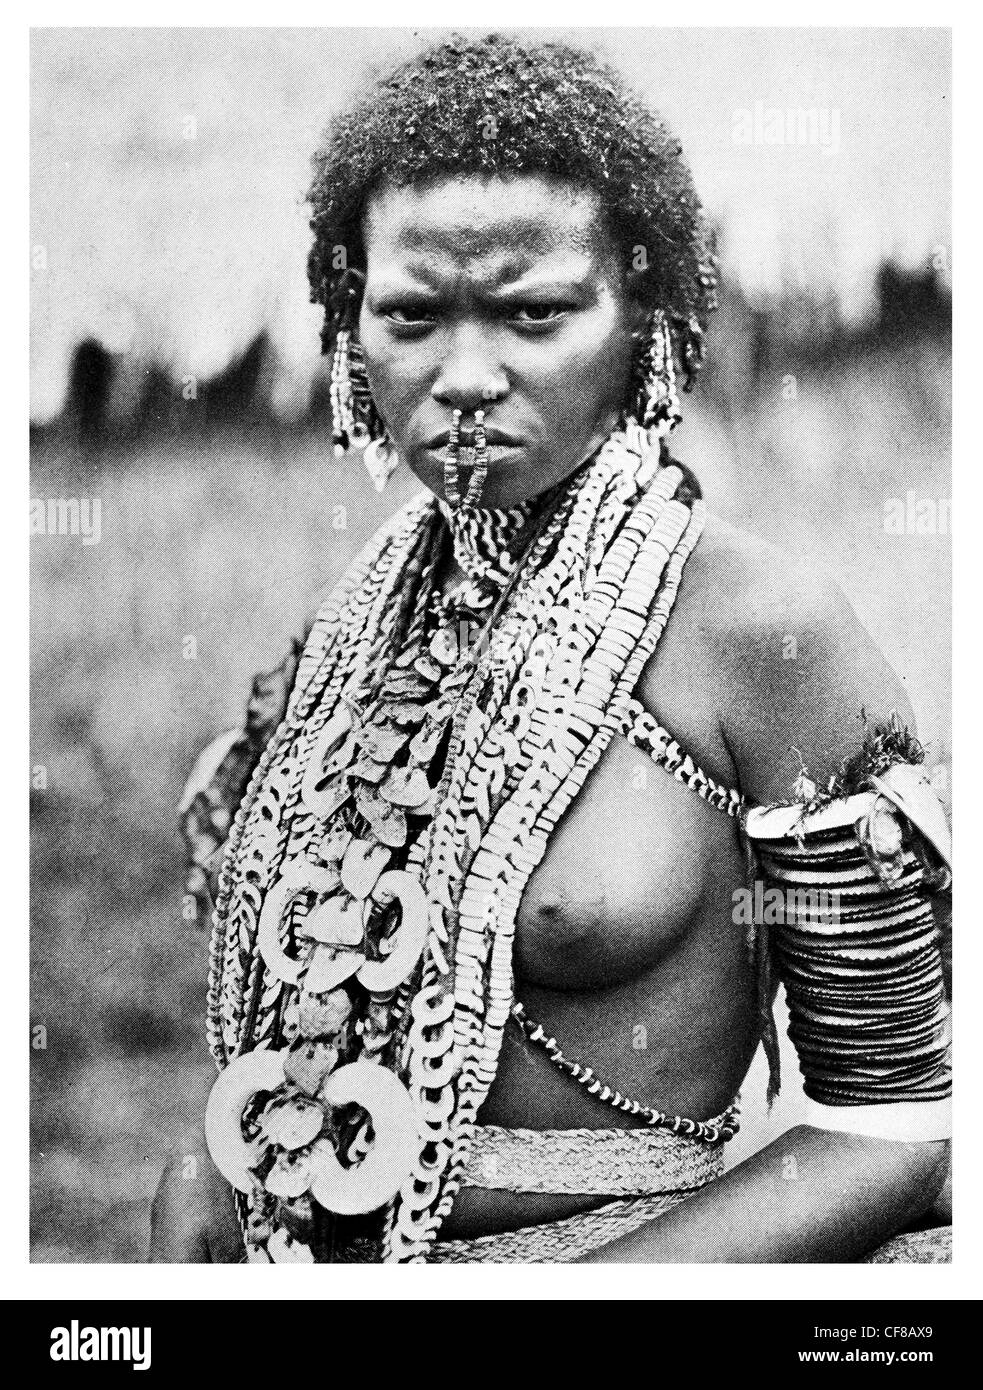 Papuan heiress family jewels New Guinea 1927 - Stock Image